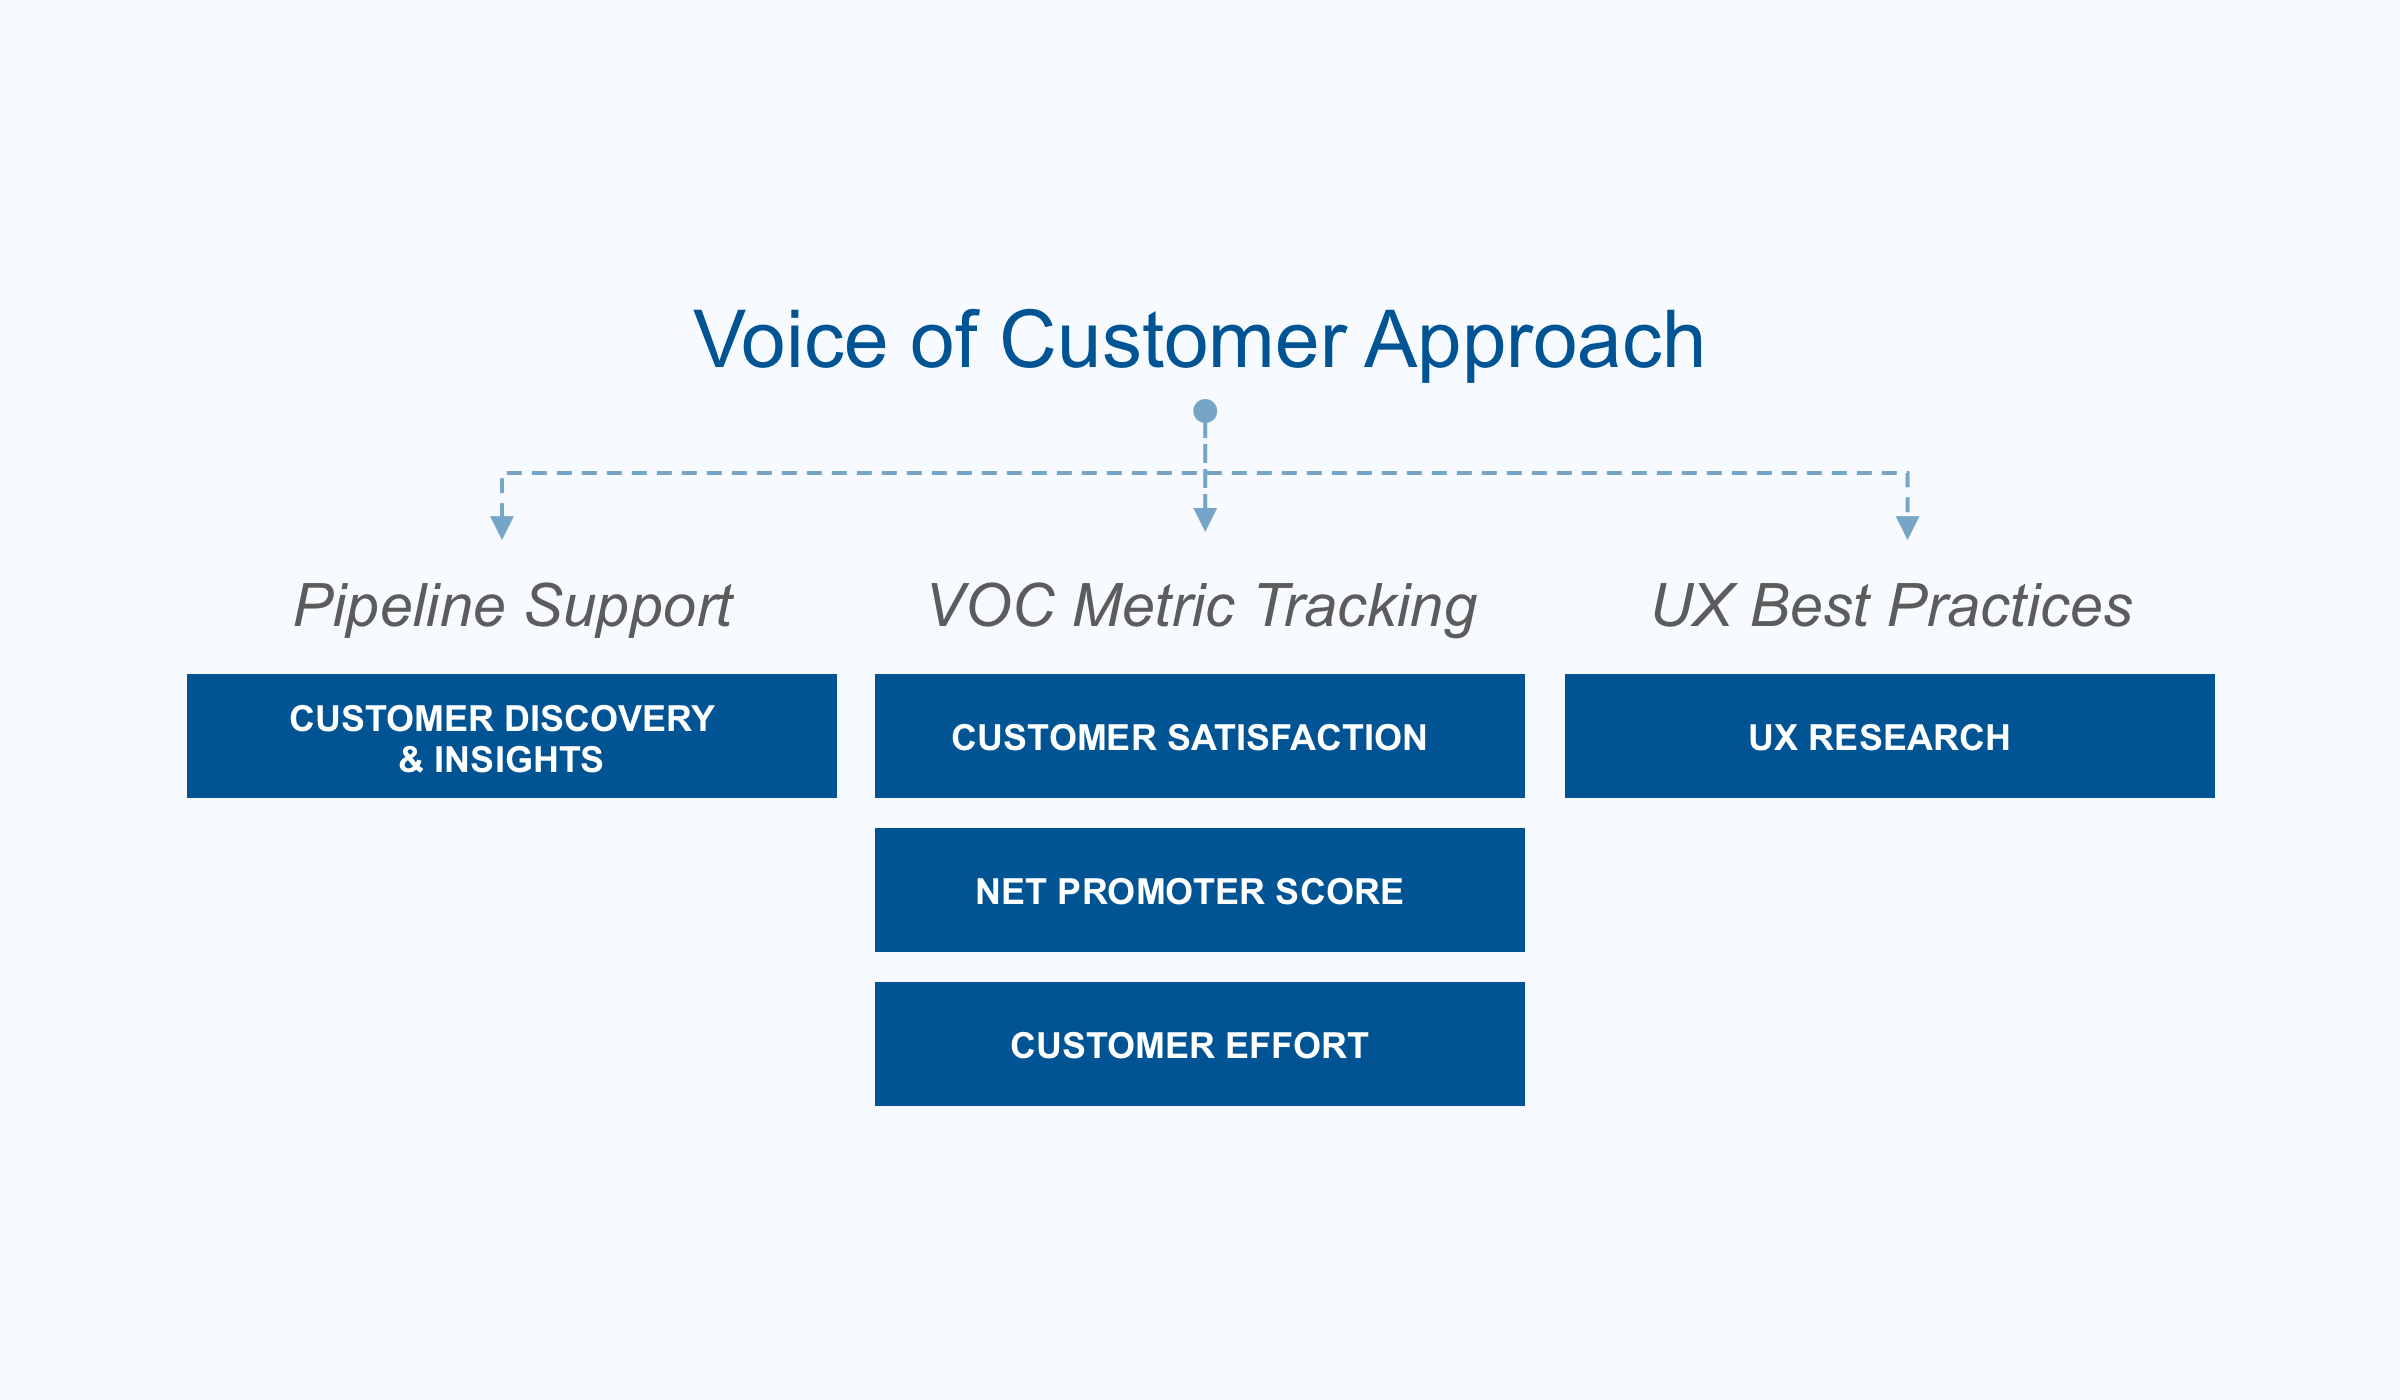 Voice of Customer Approach